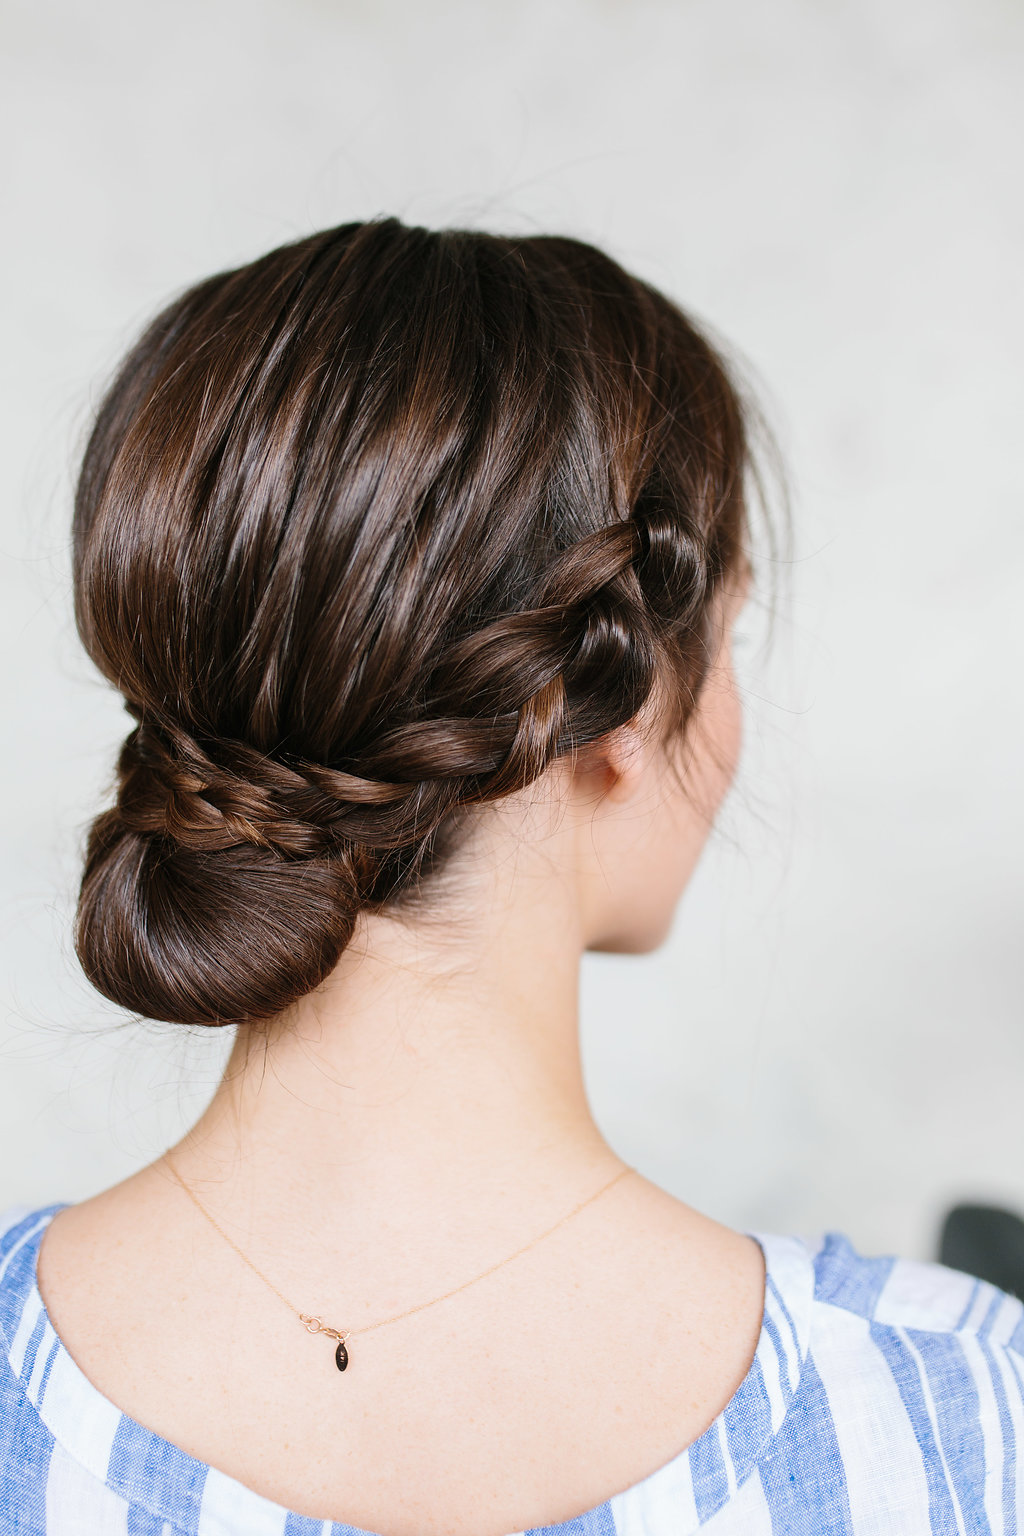 braided bun hair tutorial oktoberfest braided bun hair ...